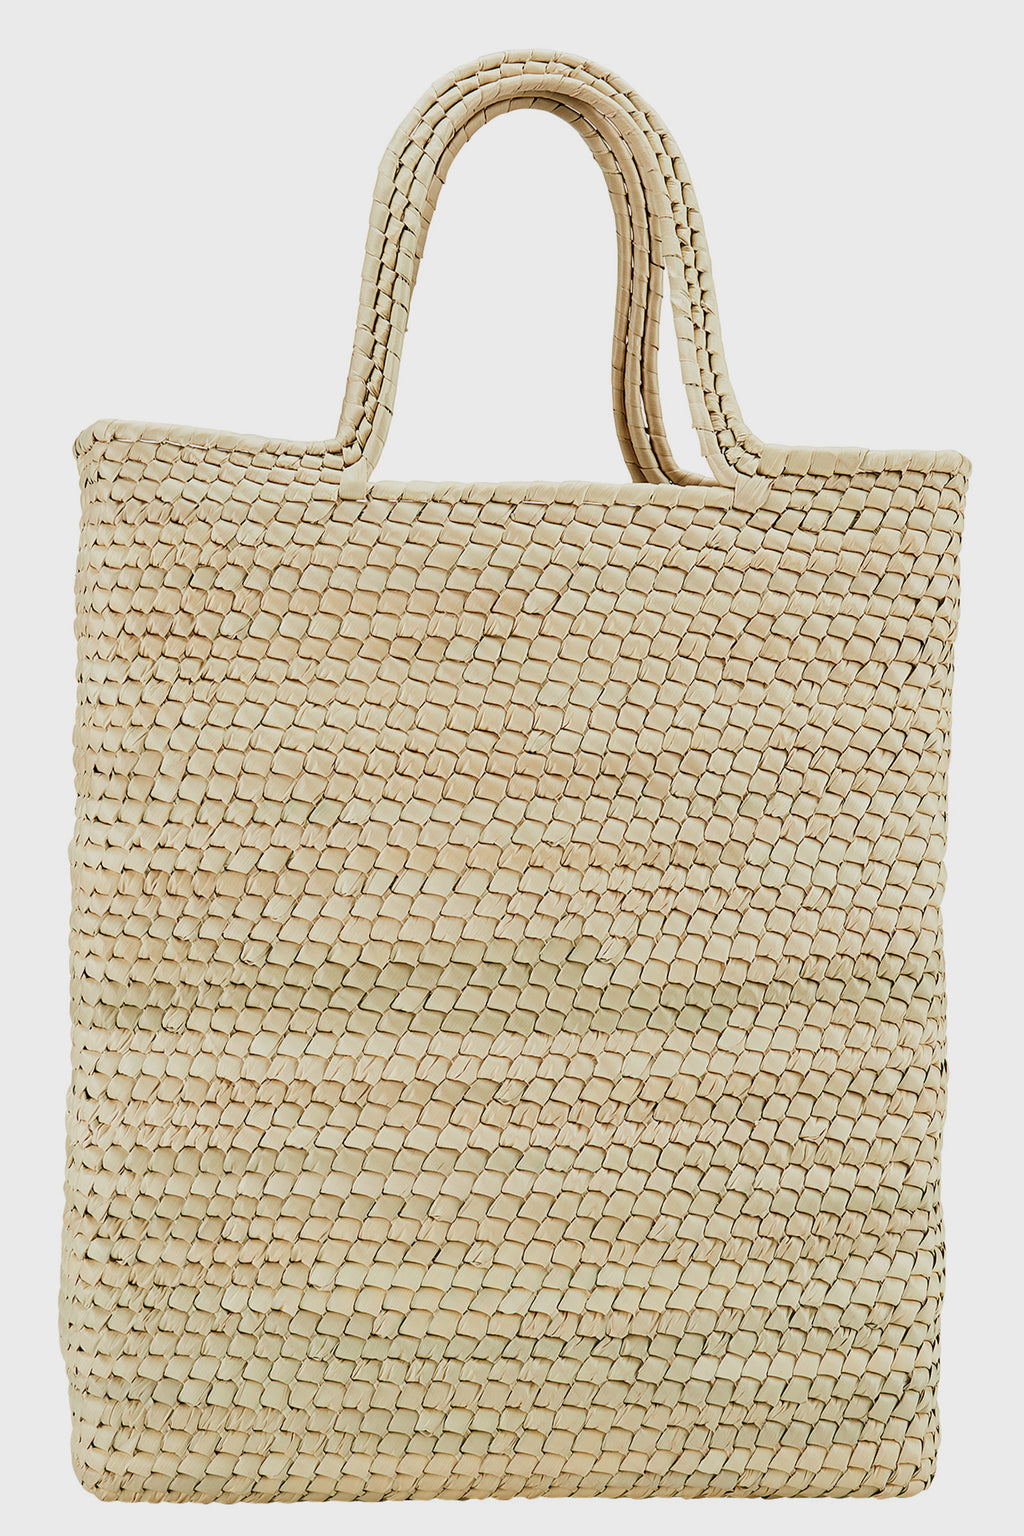 Palms Straw Long Tote (Bsb3720)-TOTE-BaySky